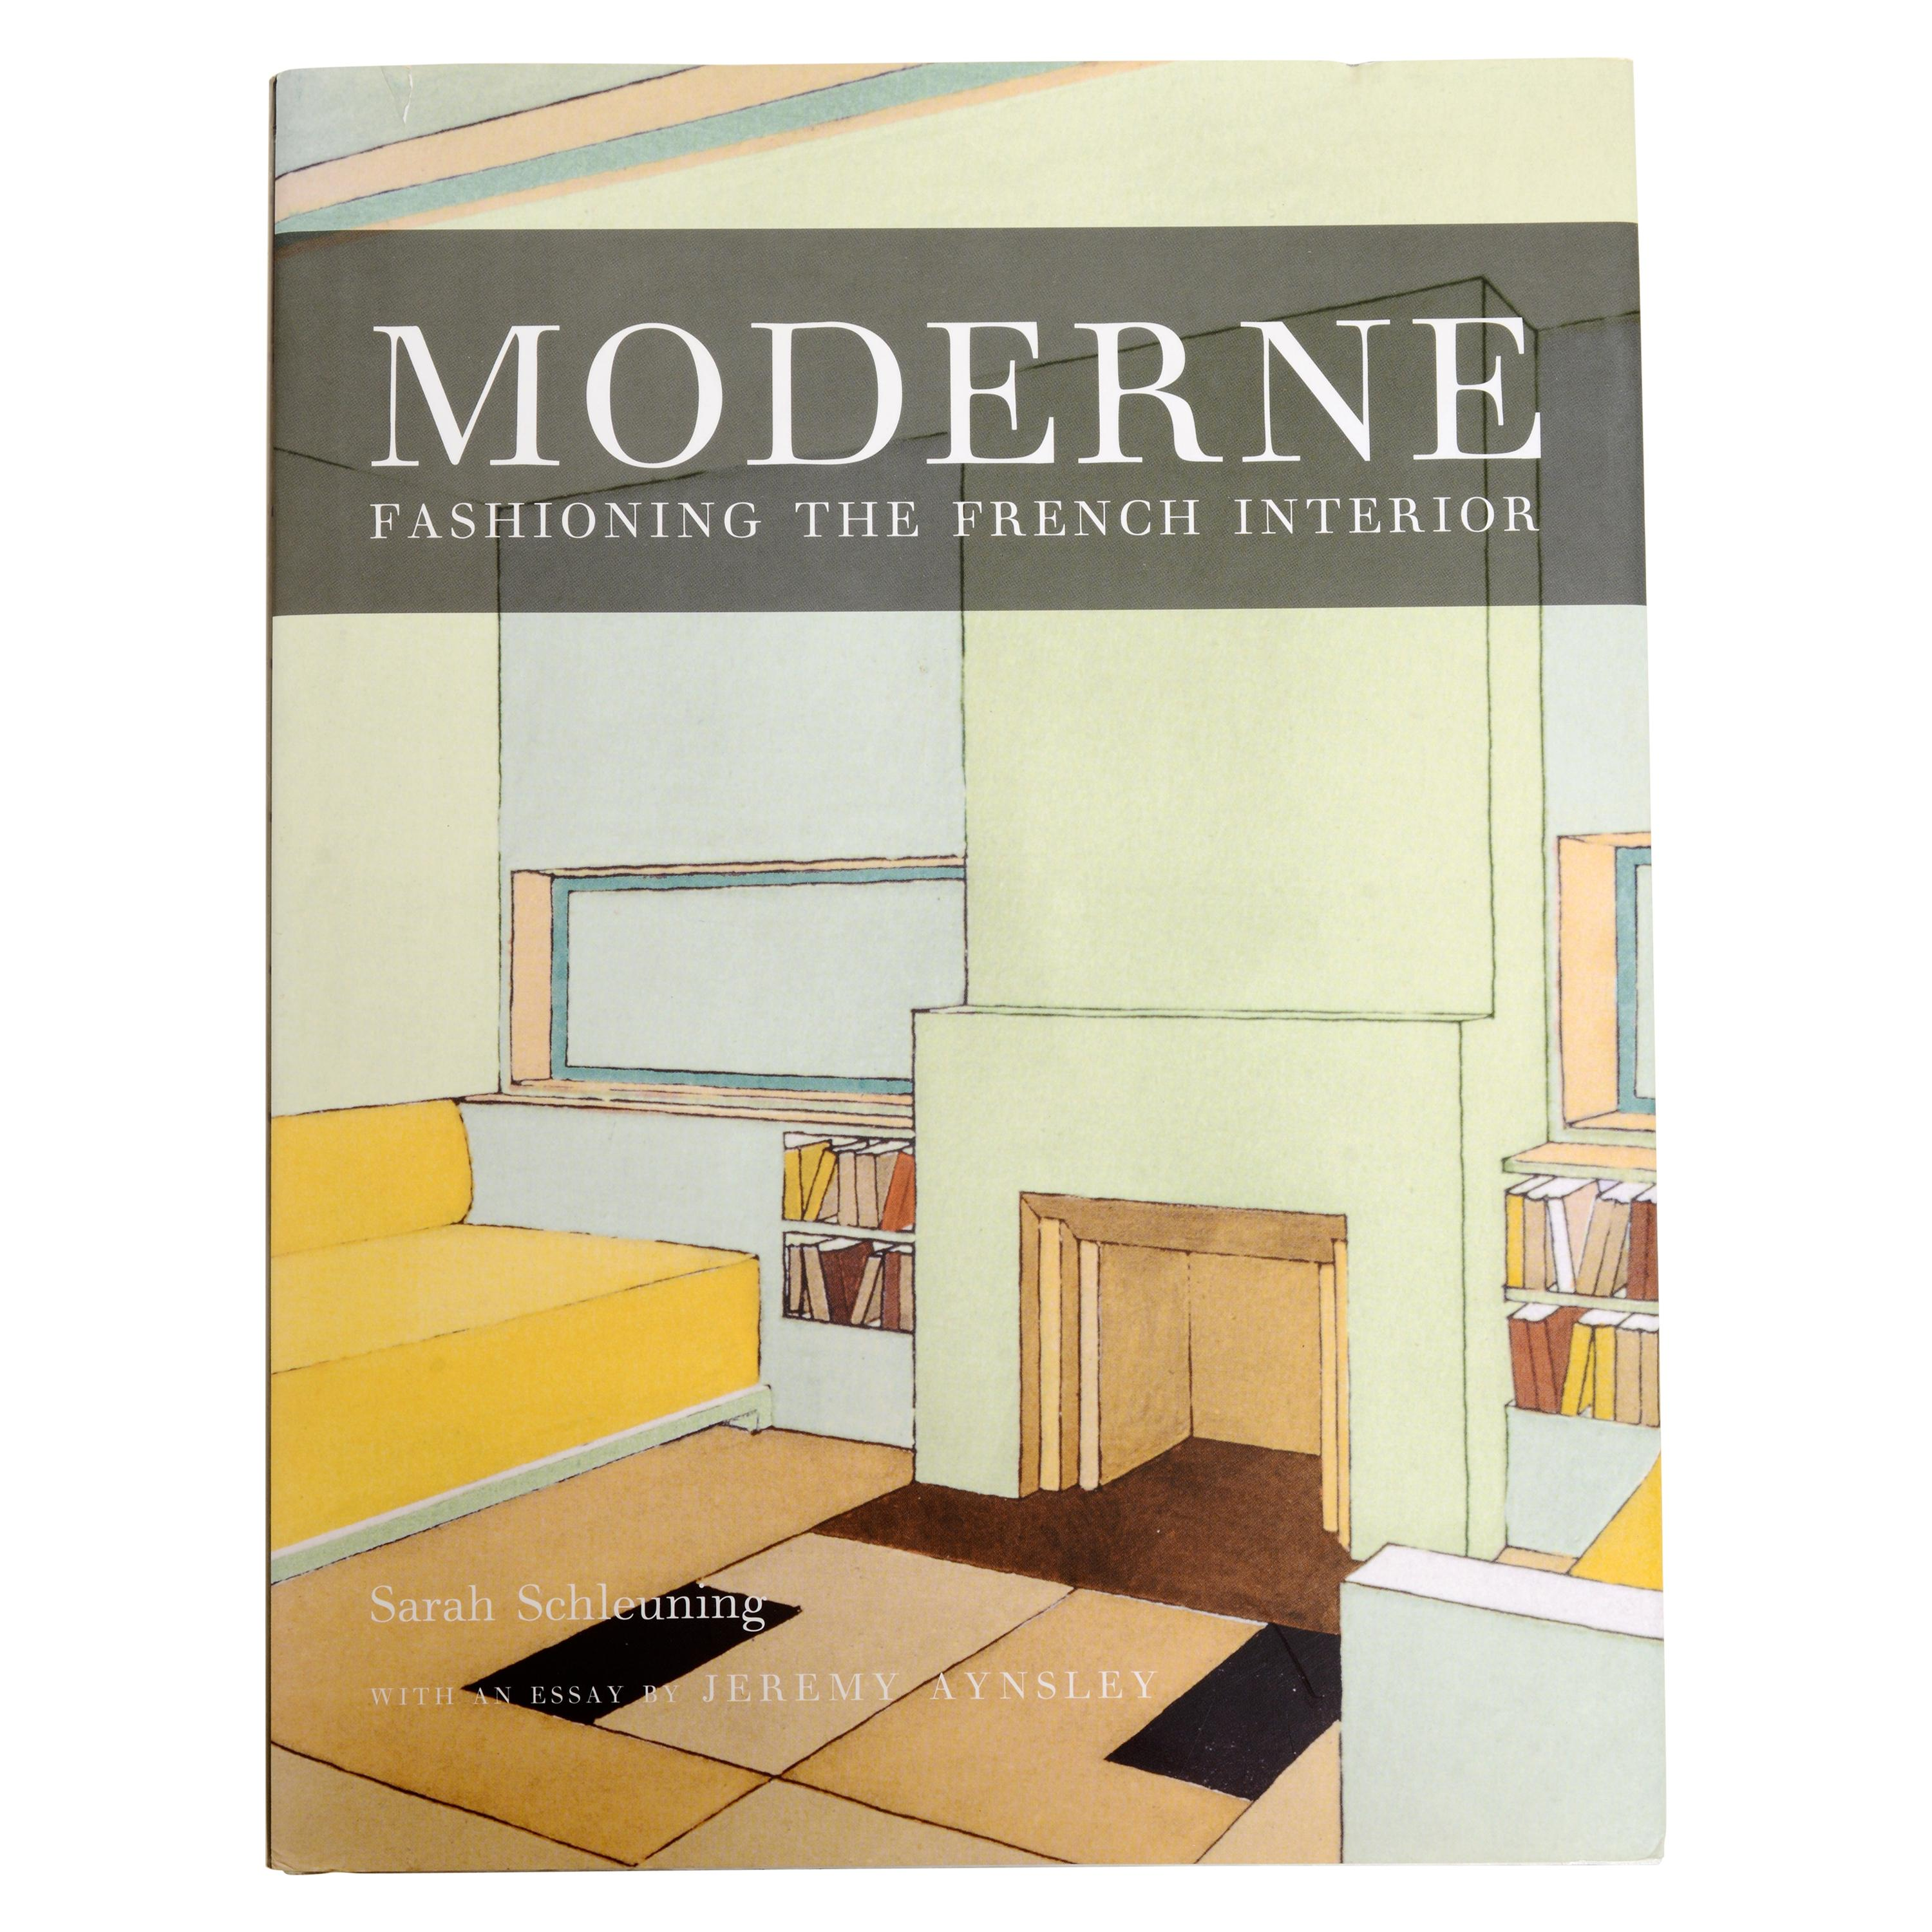 Moderne: Fashioning the French Interior by Sarah Schleuning, First Edition